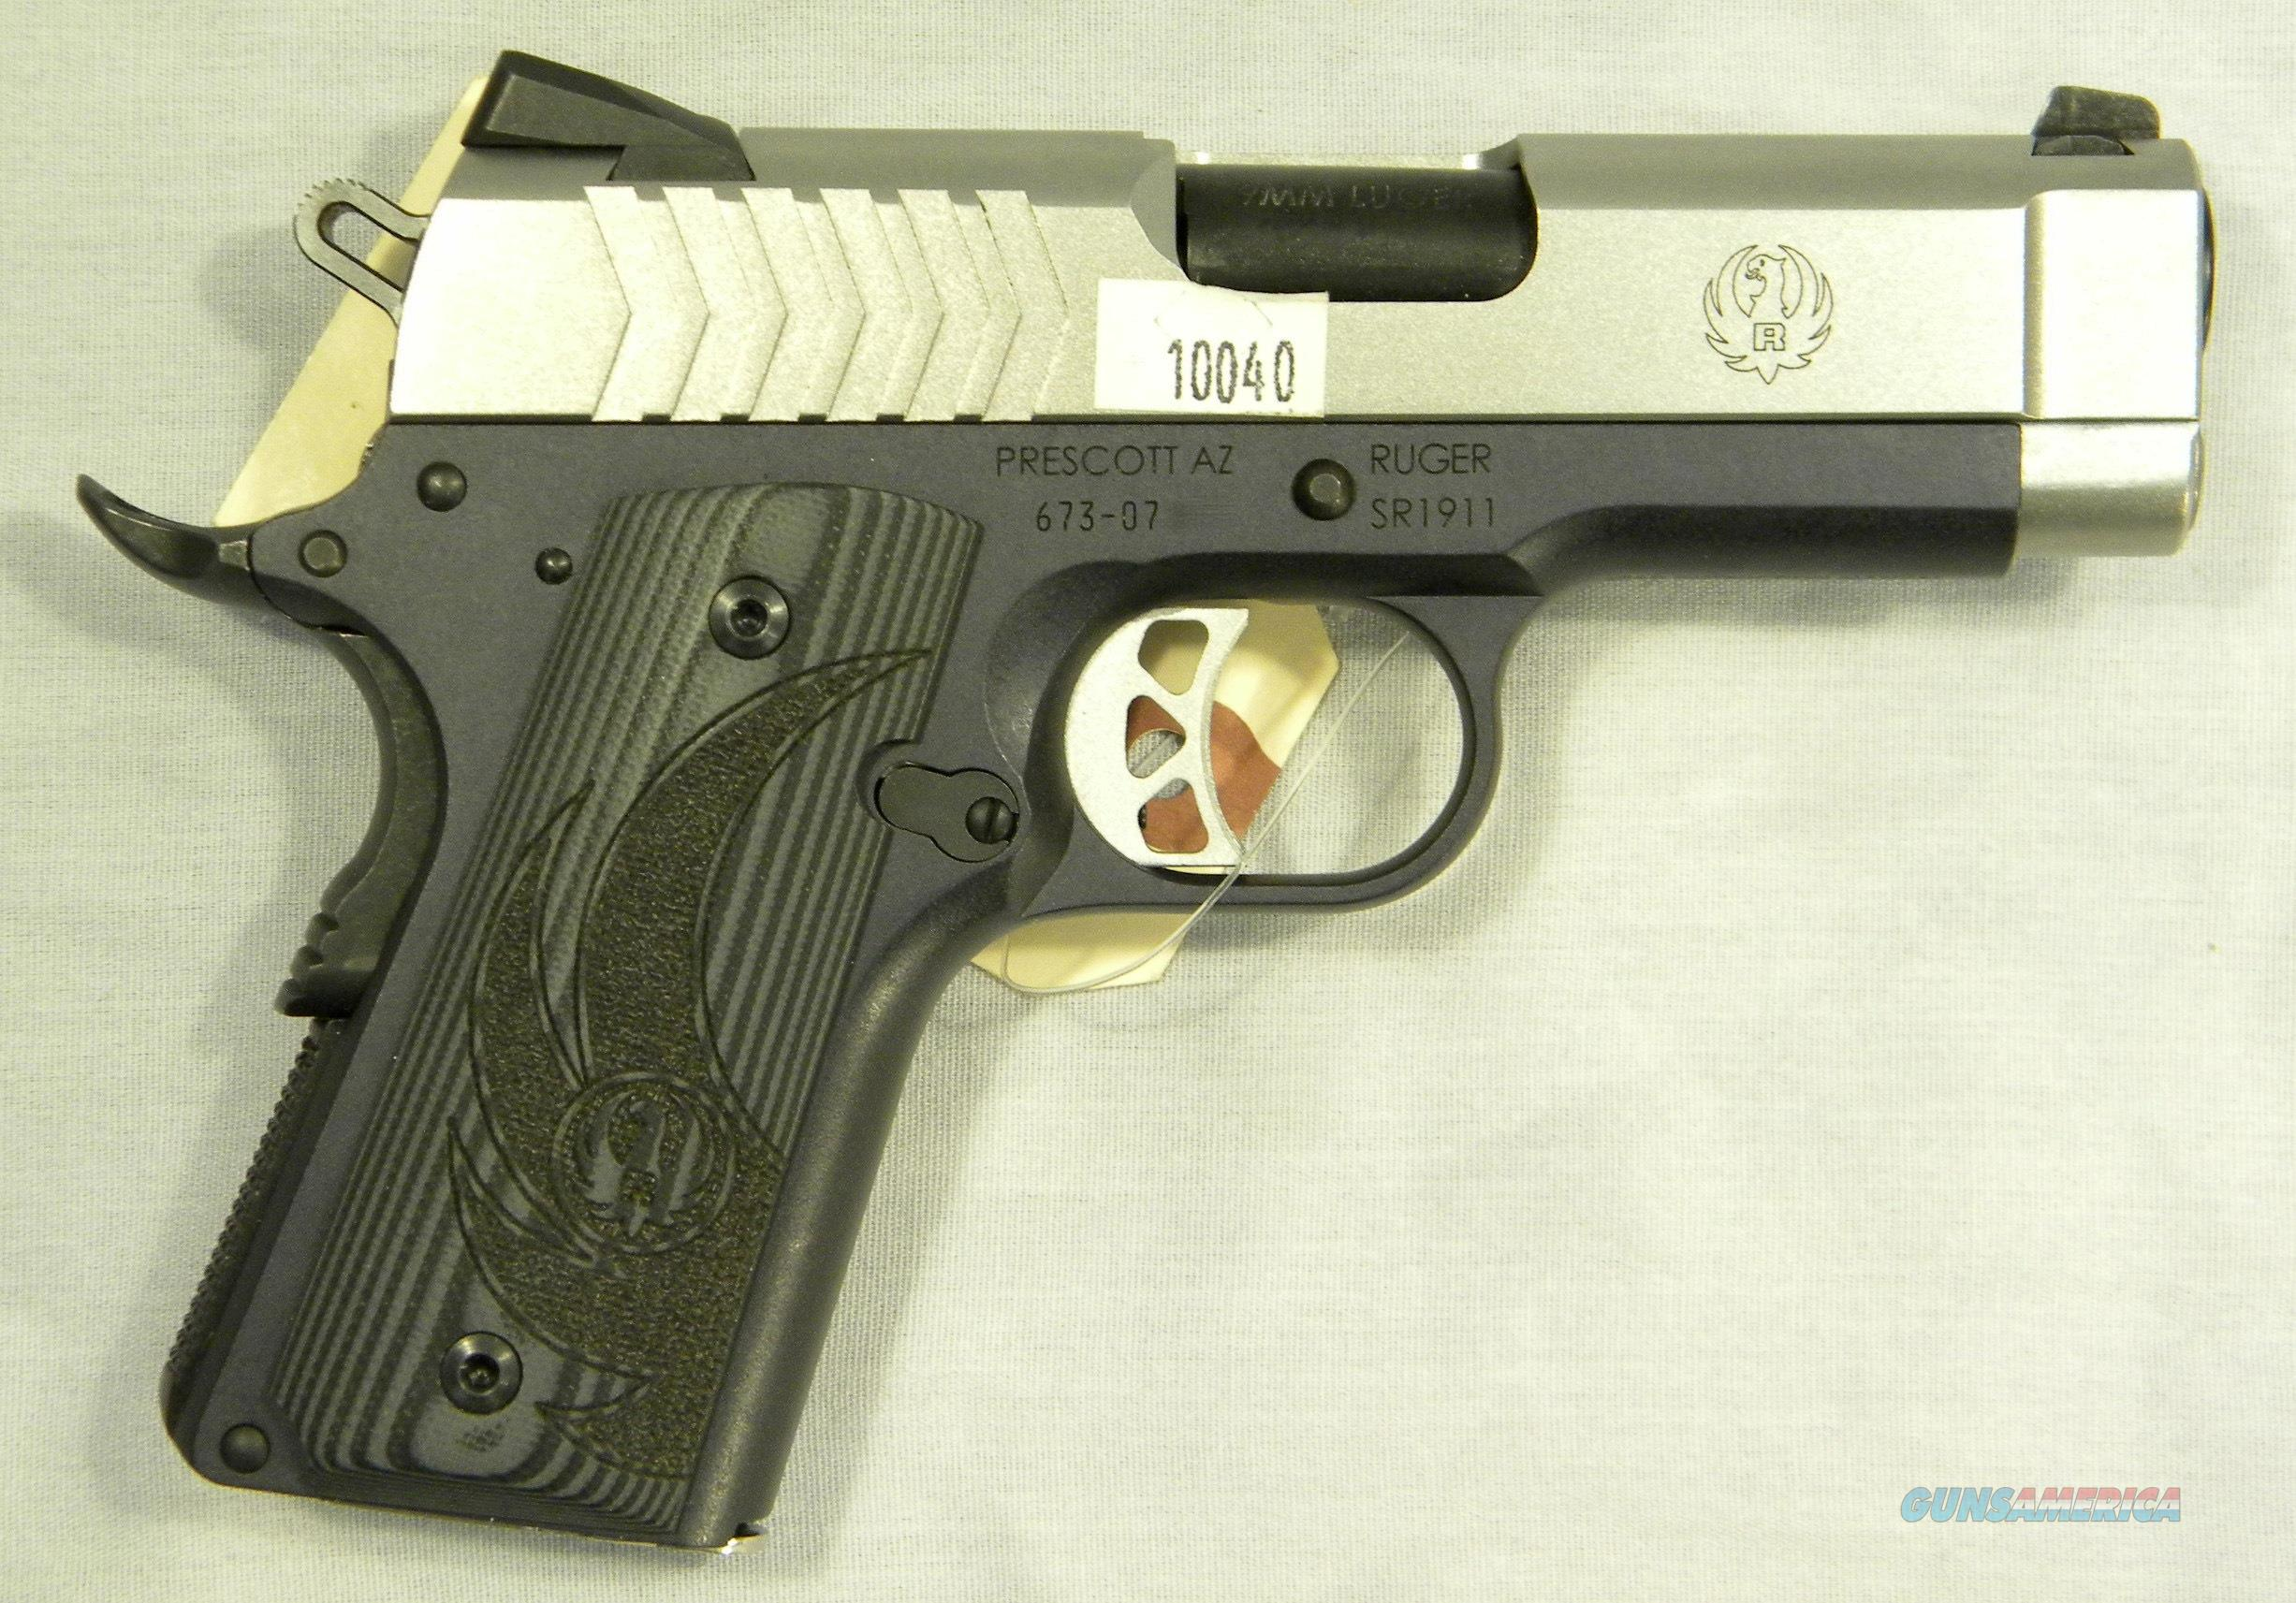 Ruger SR1911 Light Weight Officer's 9mm, Used, With Holster  Guns > Pistols > Ruger Semi-Auto Pistols > 1911